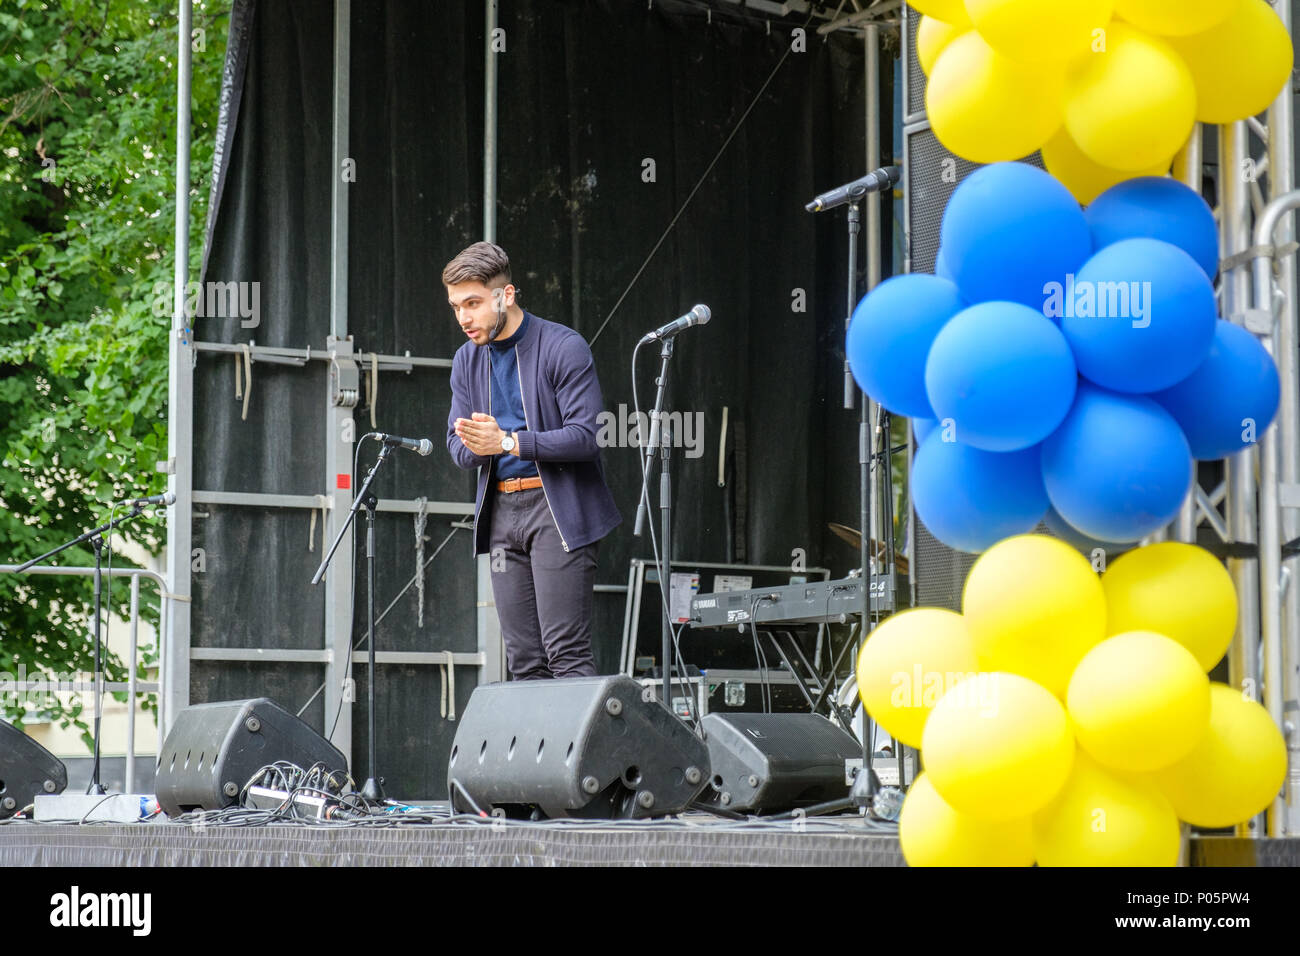 Shanga Aziz, co-founder of Locker Room Talk, was a speaker during National day celebration in the Olai Park of Norrkoping, Sweden. - Stock Image